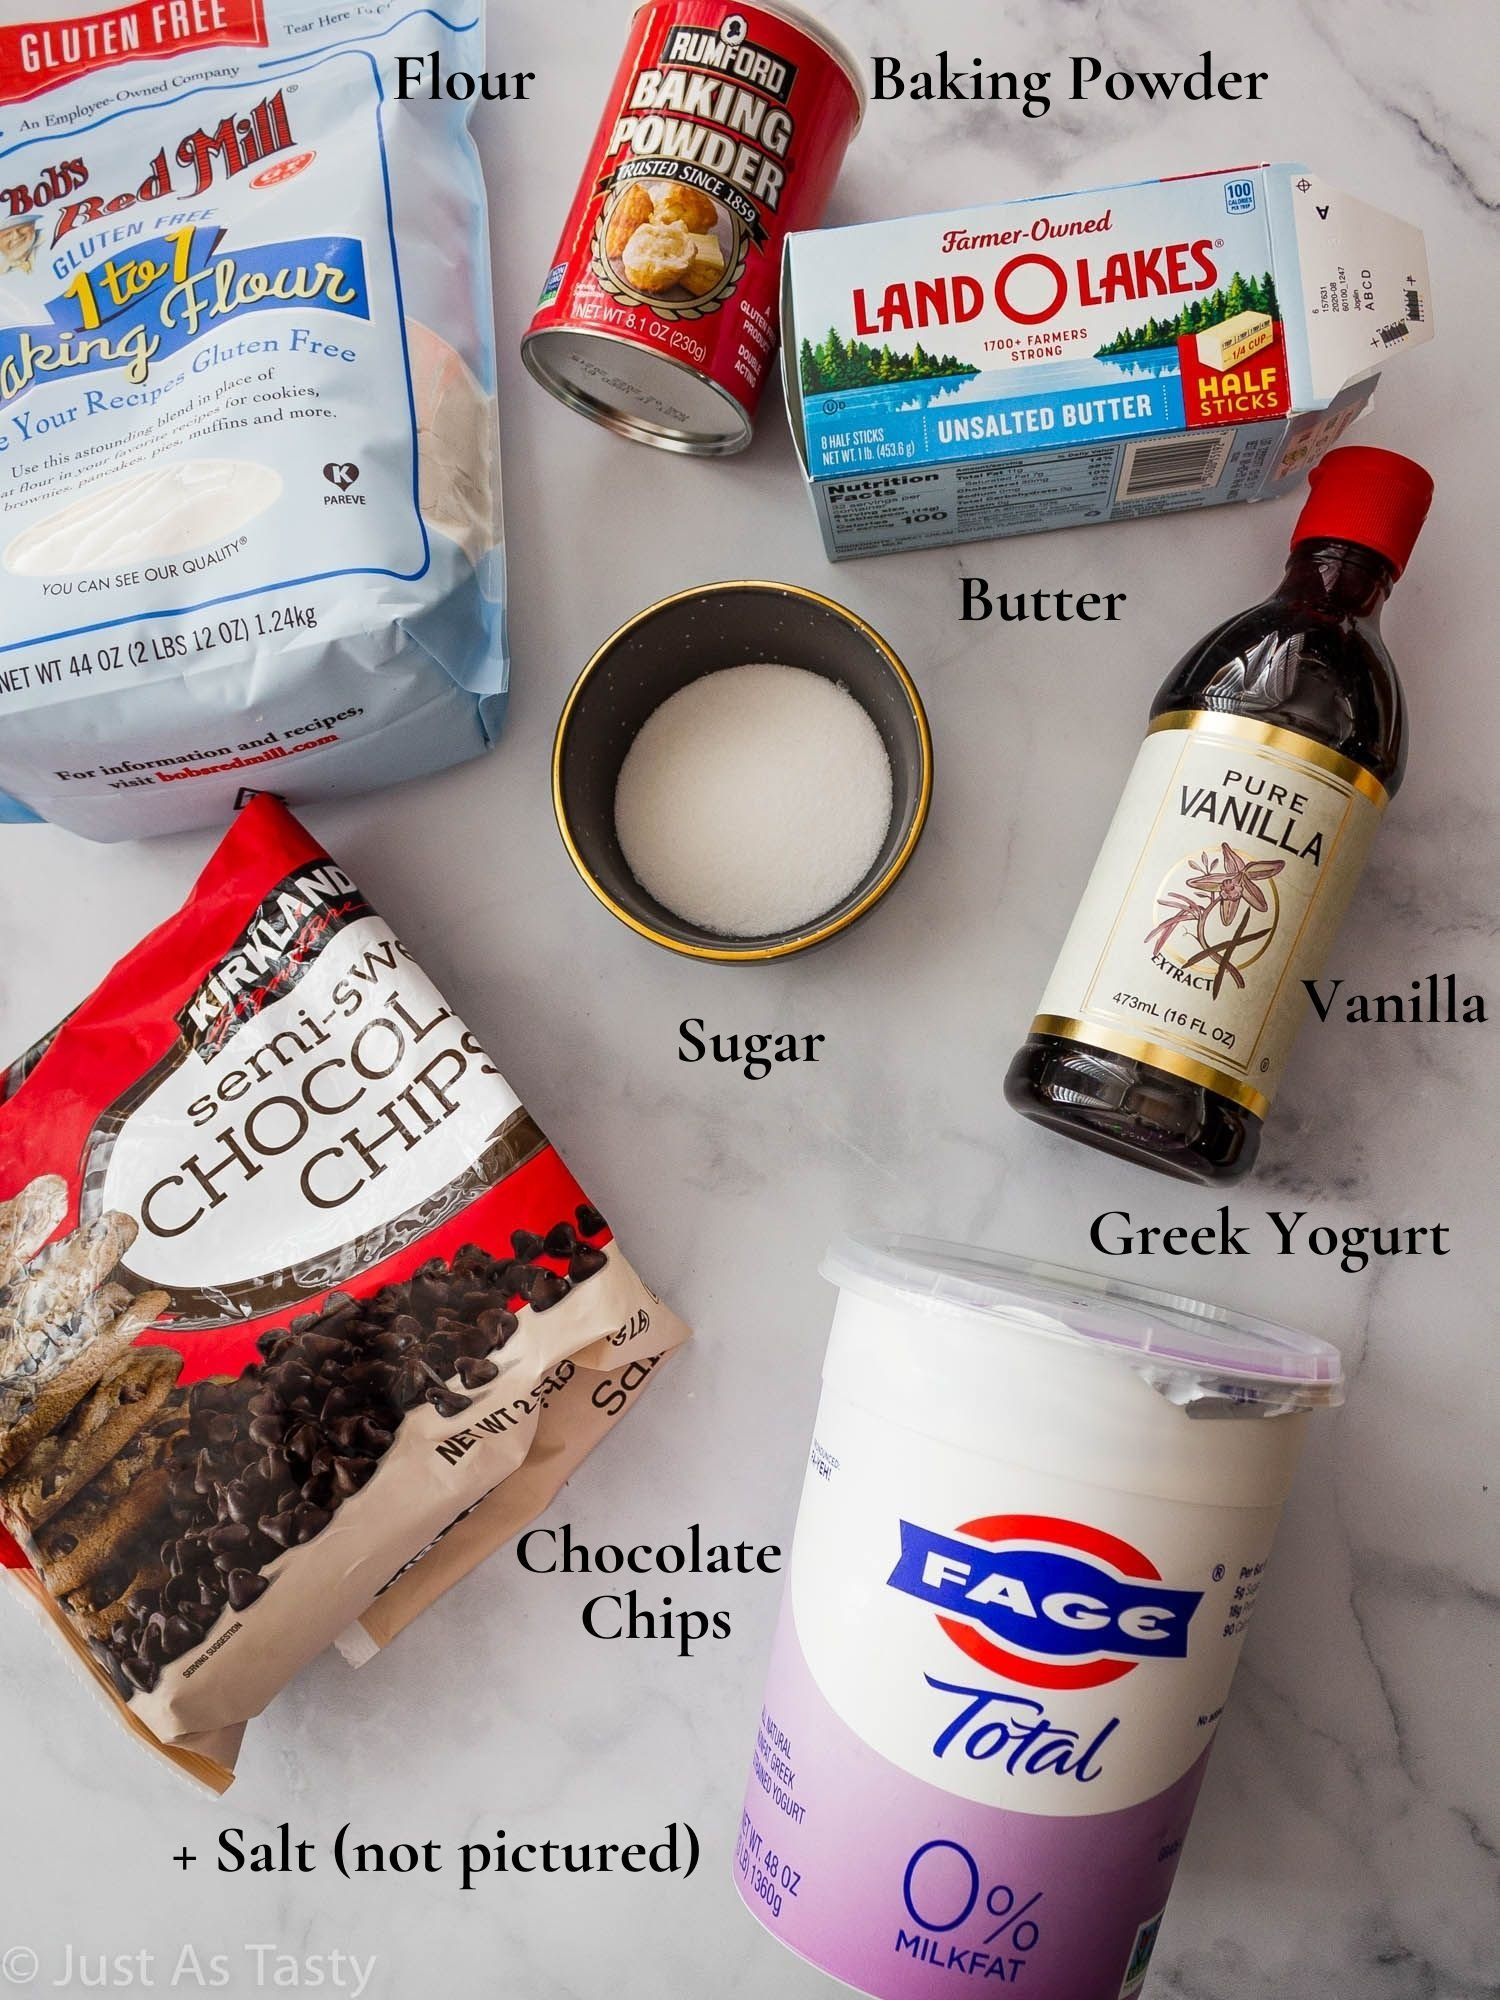 Ingredients for cake.